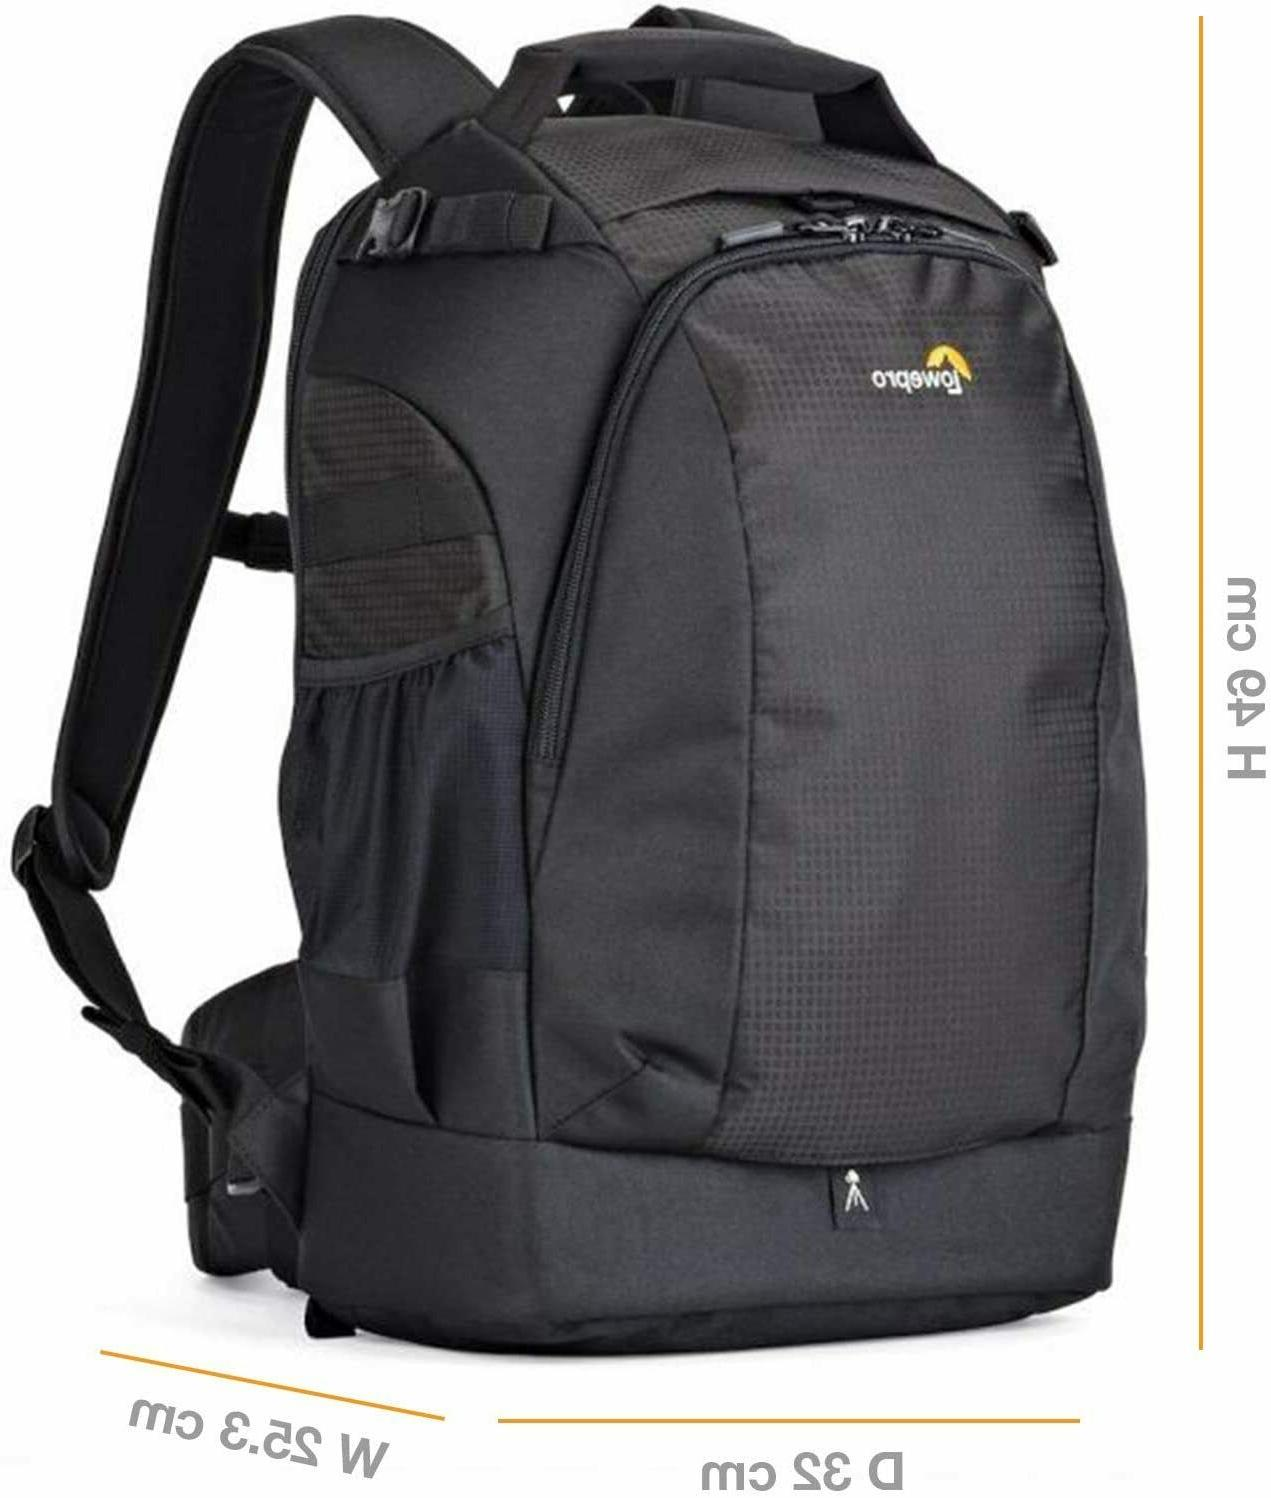 Brand Lowepro 400 Backpack for LP37129